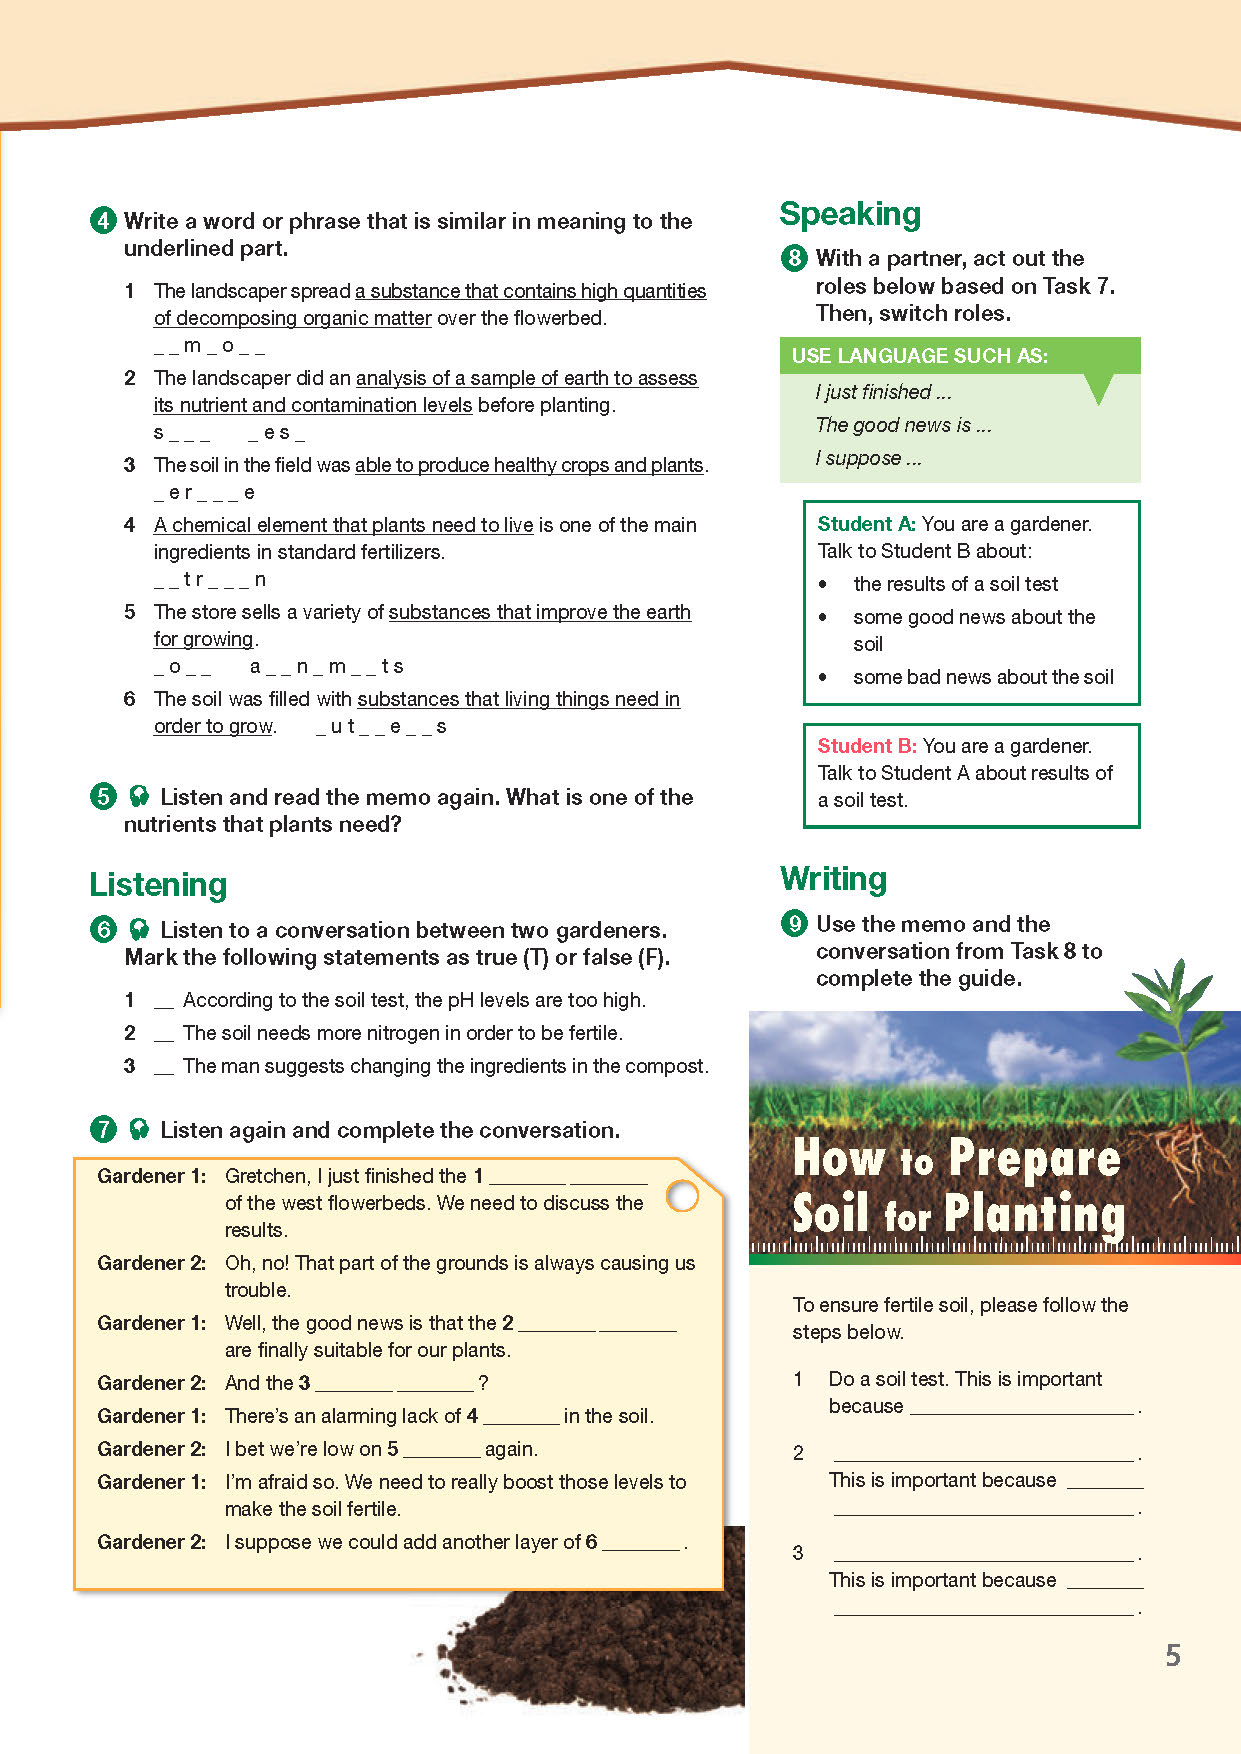 ESP English for Specific Purposes - Career Paths: Landscaping - Sample Page 2